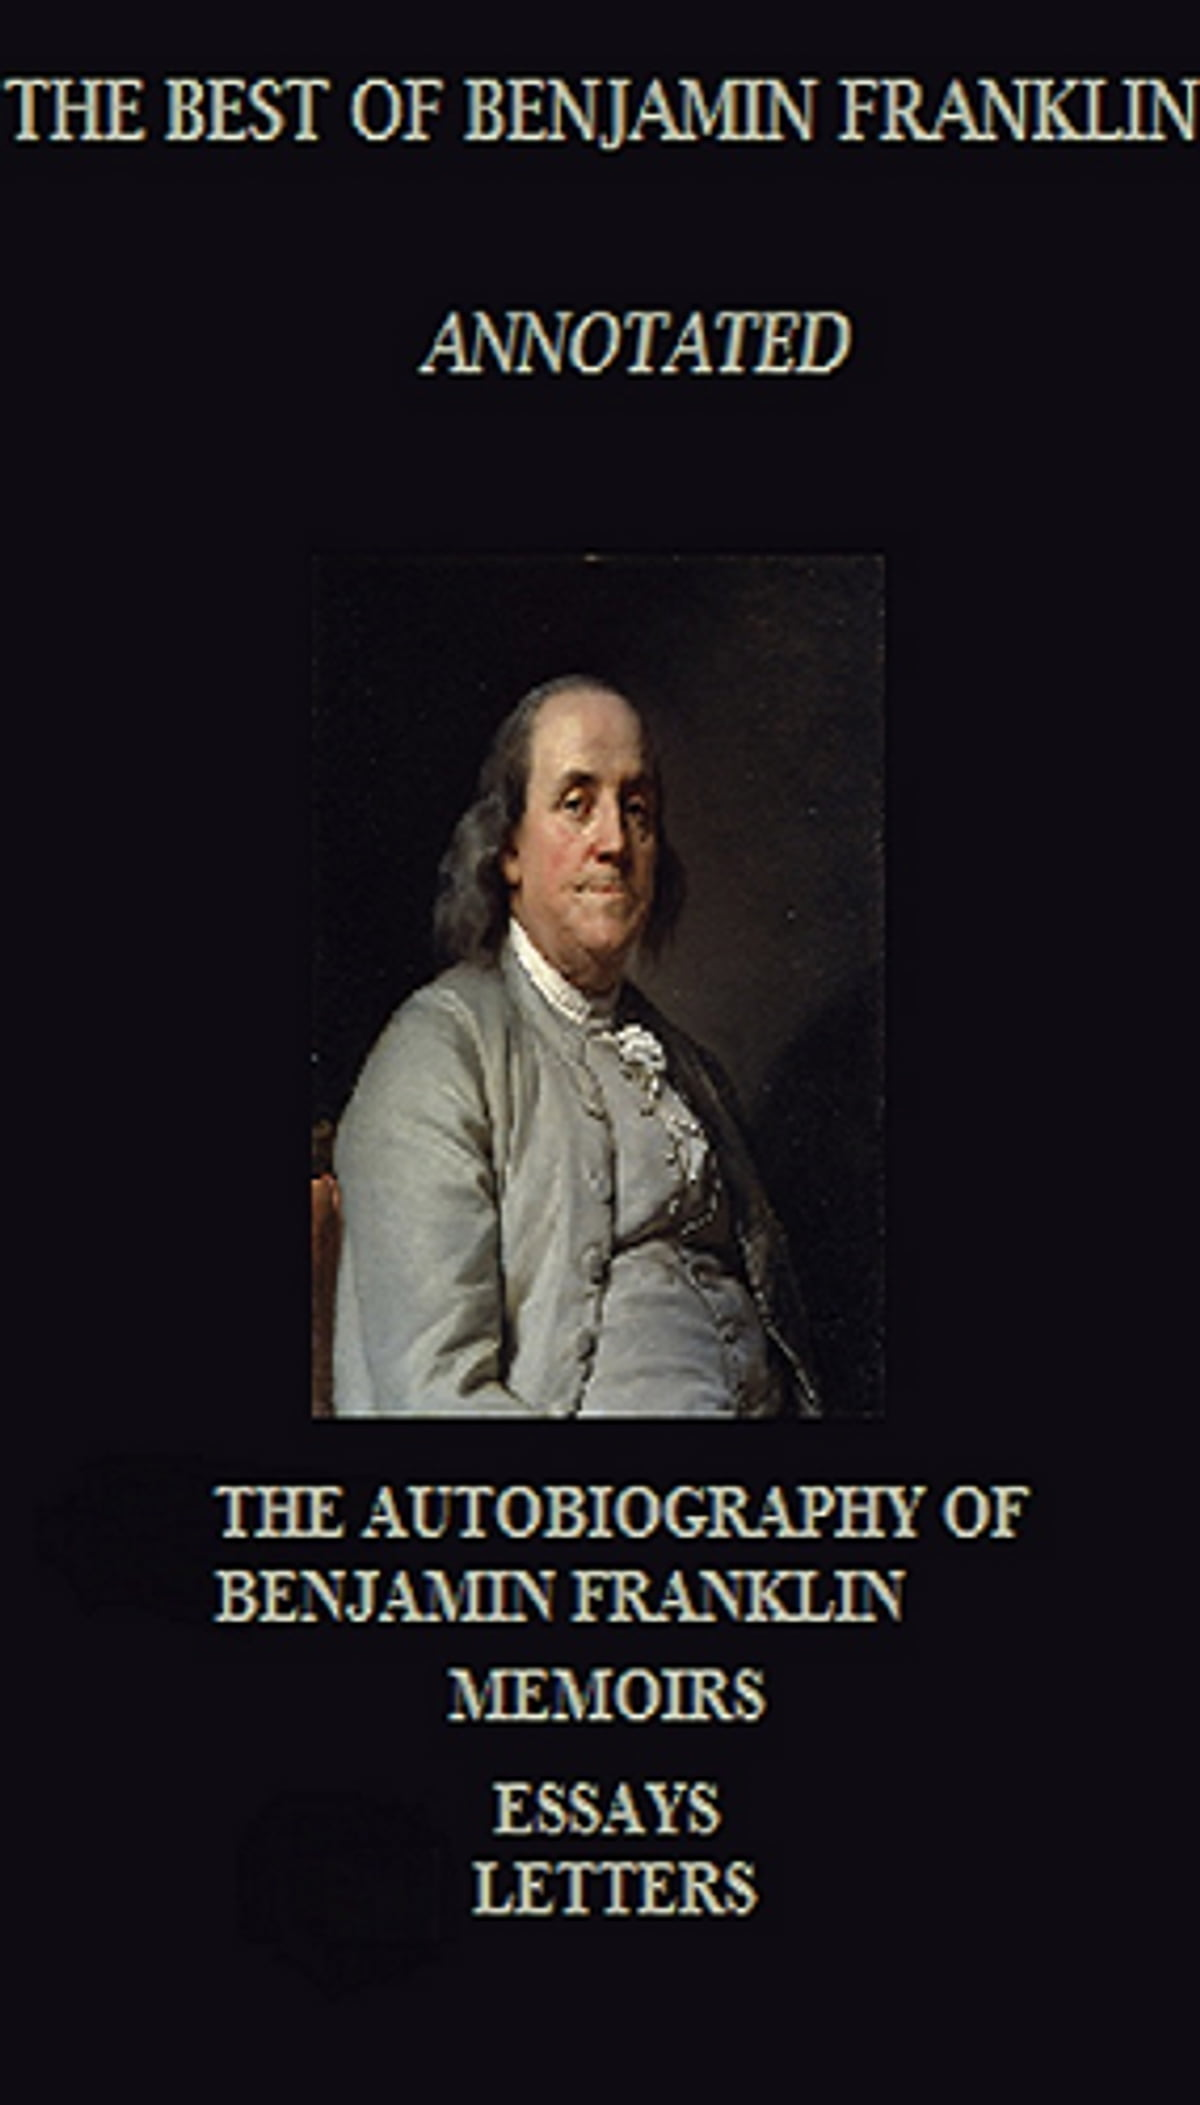 The Autobiography of Benjamin Franklin & Henry Ford (My Life and Work) (Annotated) (Unabridged)